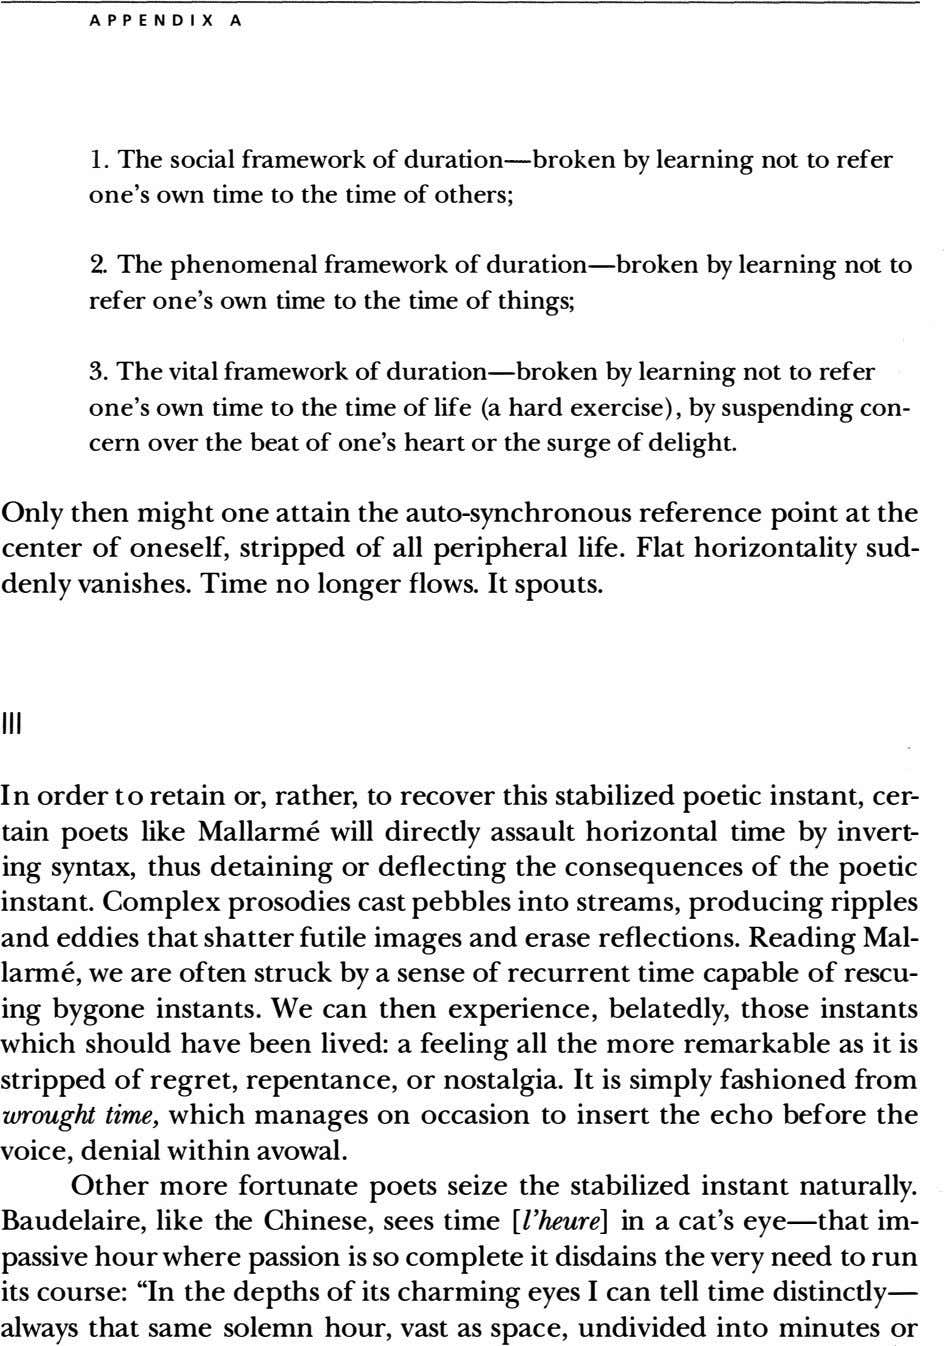 A P PENDIX A 1. The social framework of duration-broken by learning not to refer